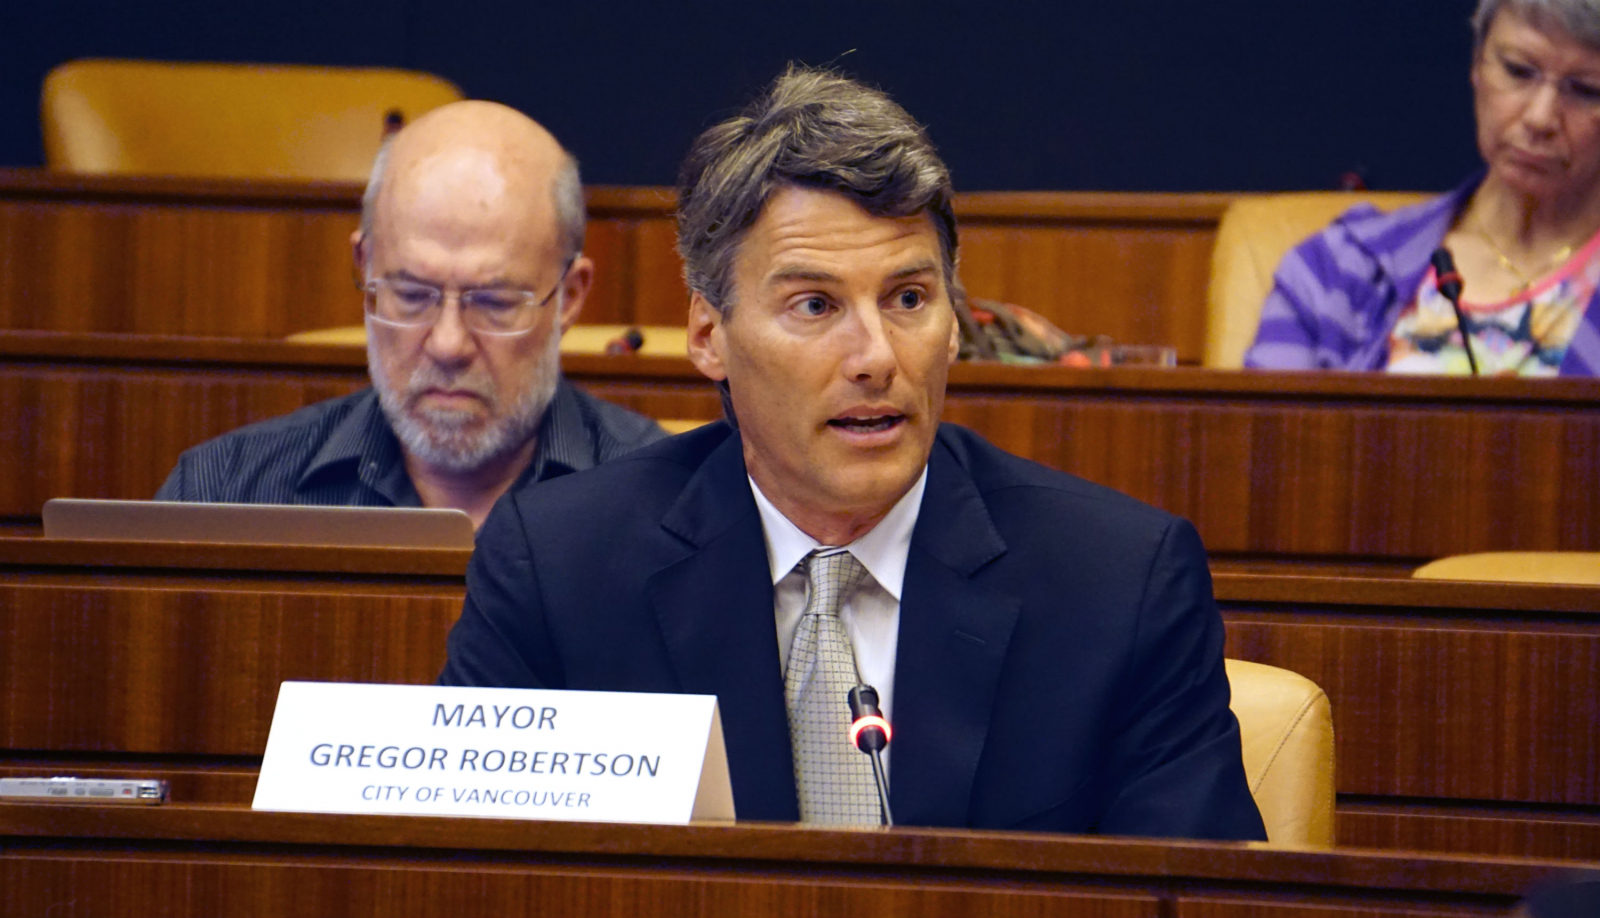 Gregor Robertson, Vision Vancouver, Vancouver mayor, Kinder Morgan, Trans Mountain expansion